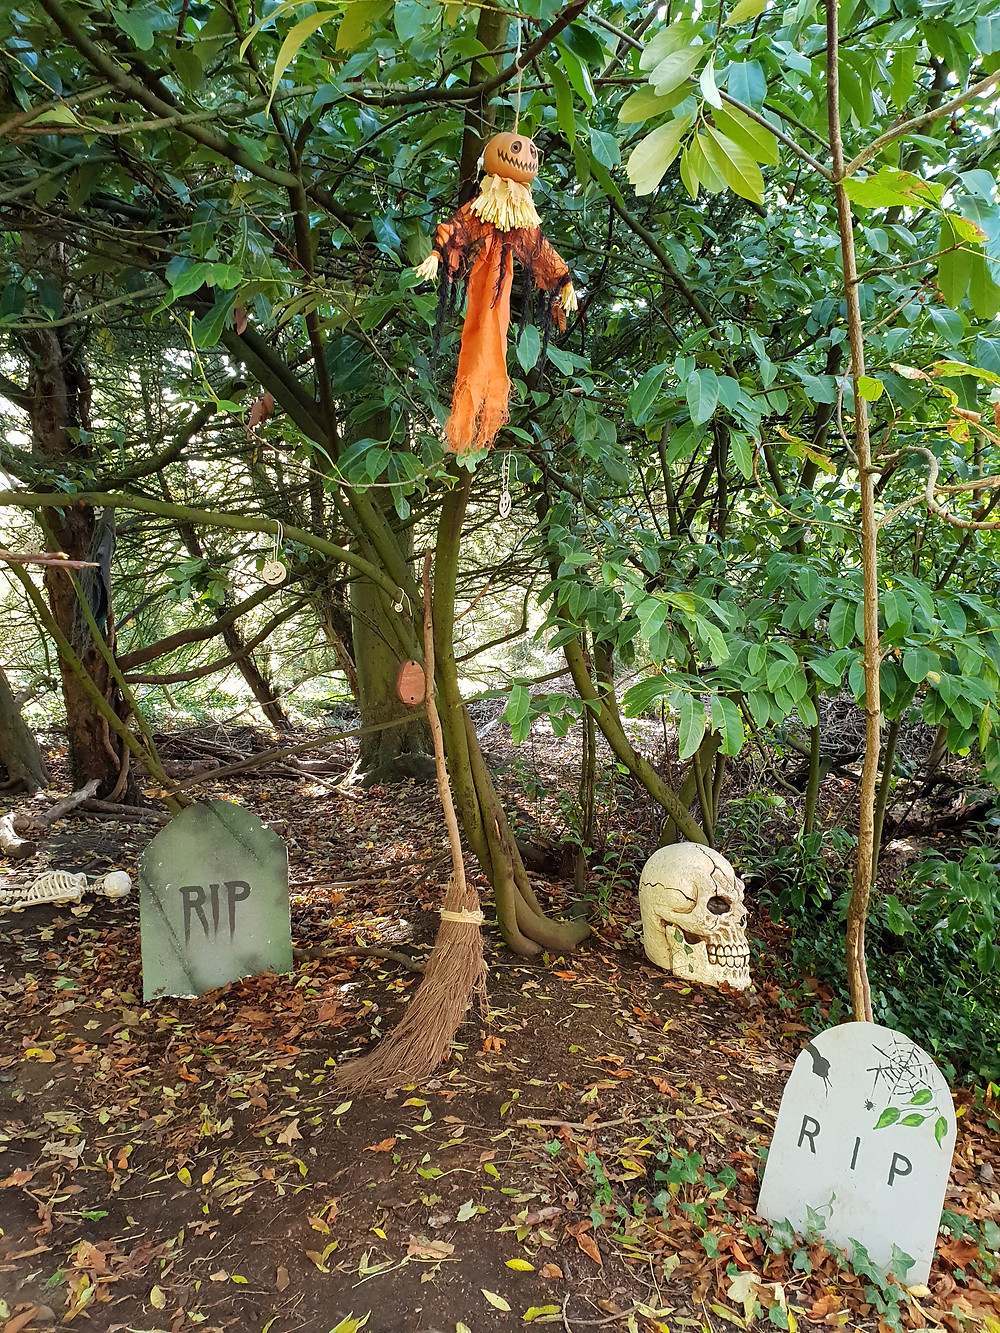 Halloween decorations at The Wild Place